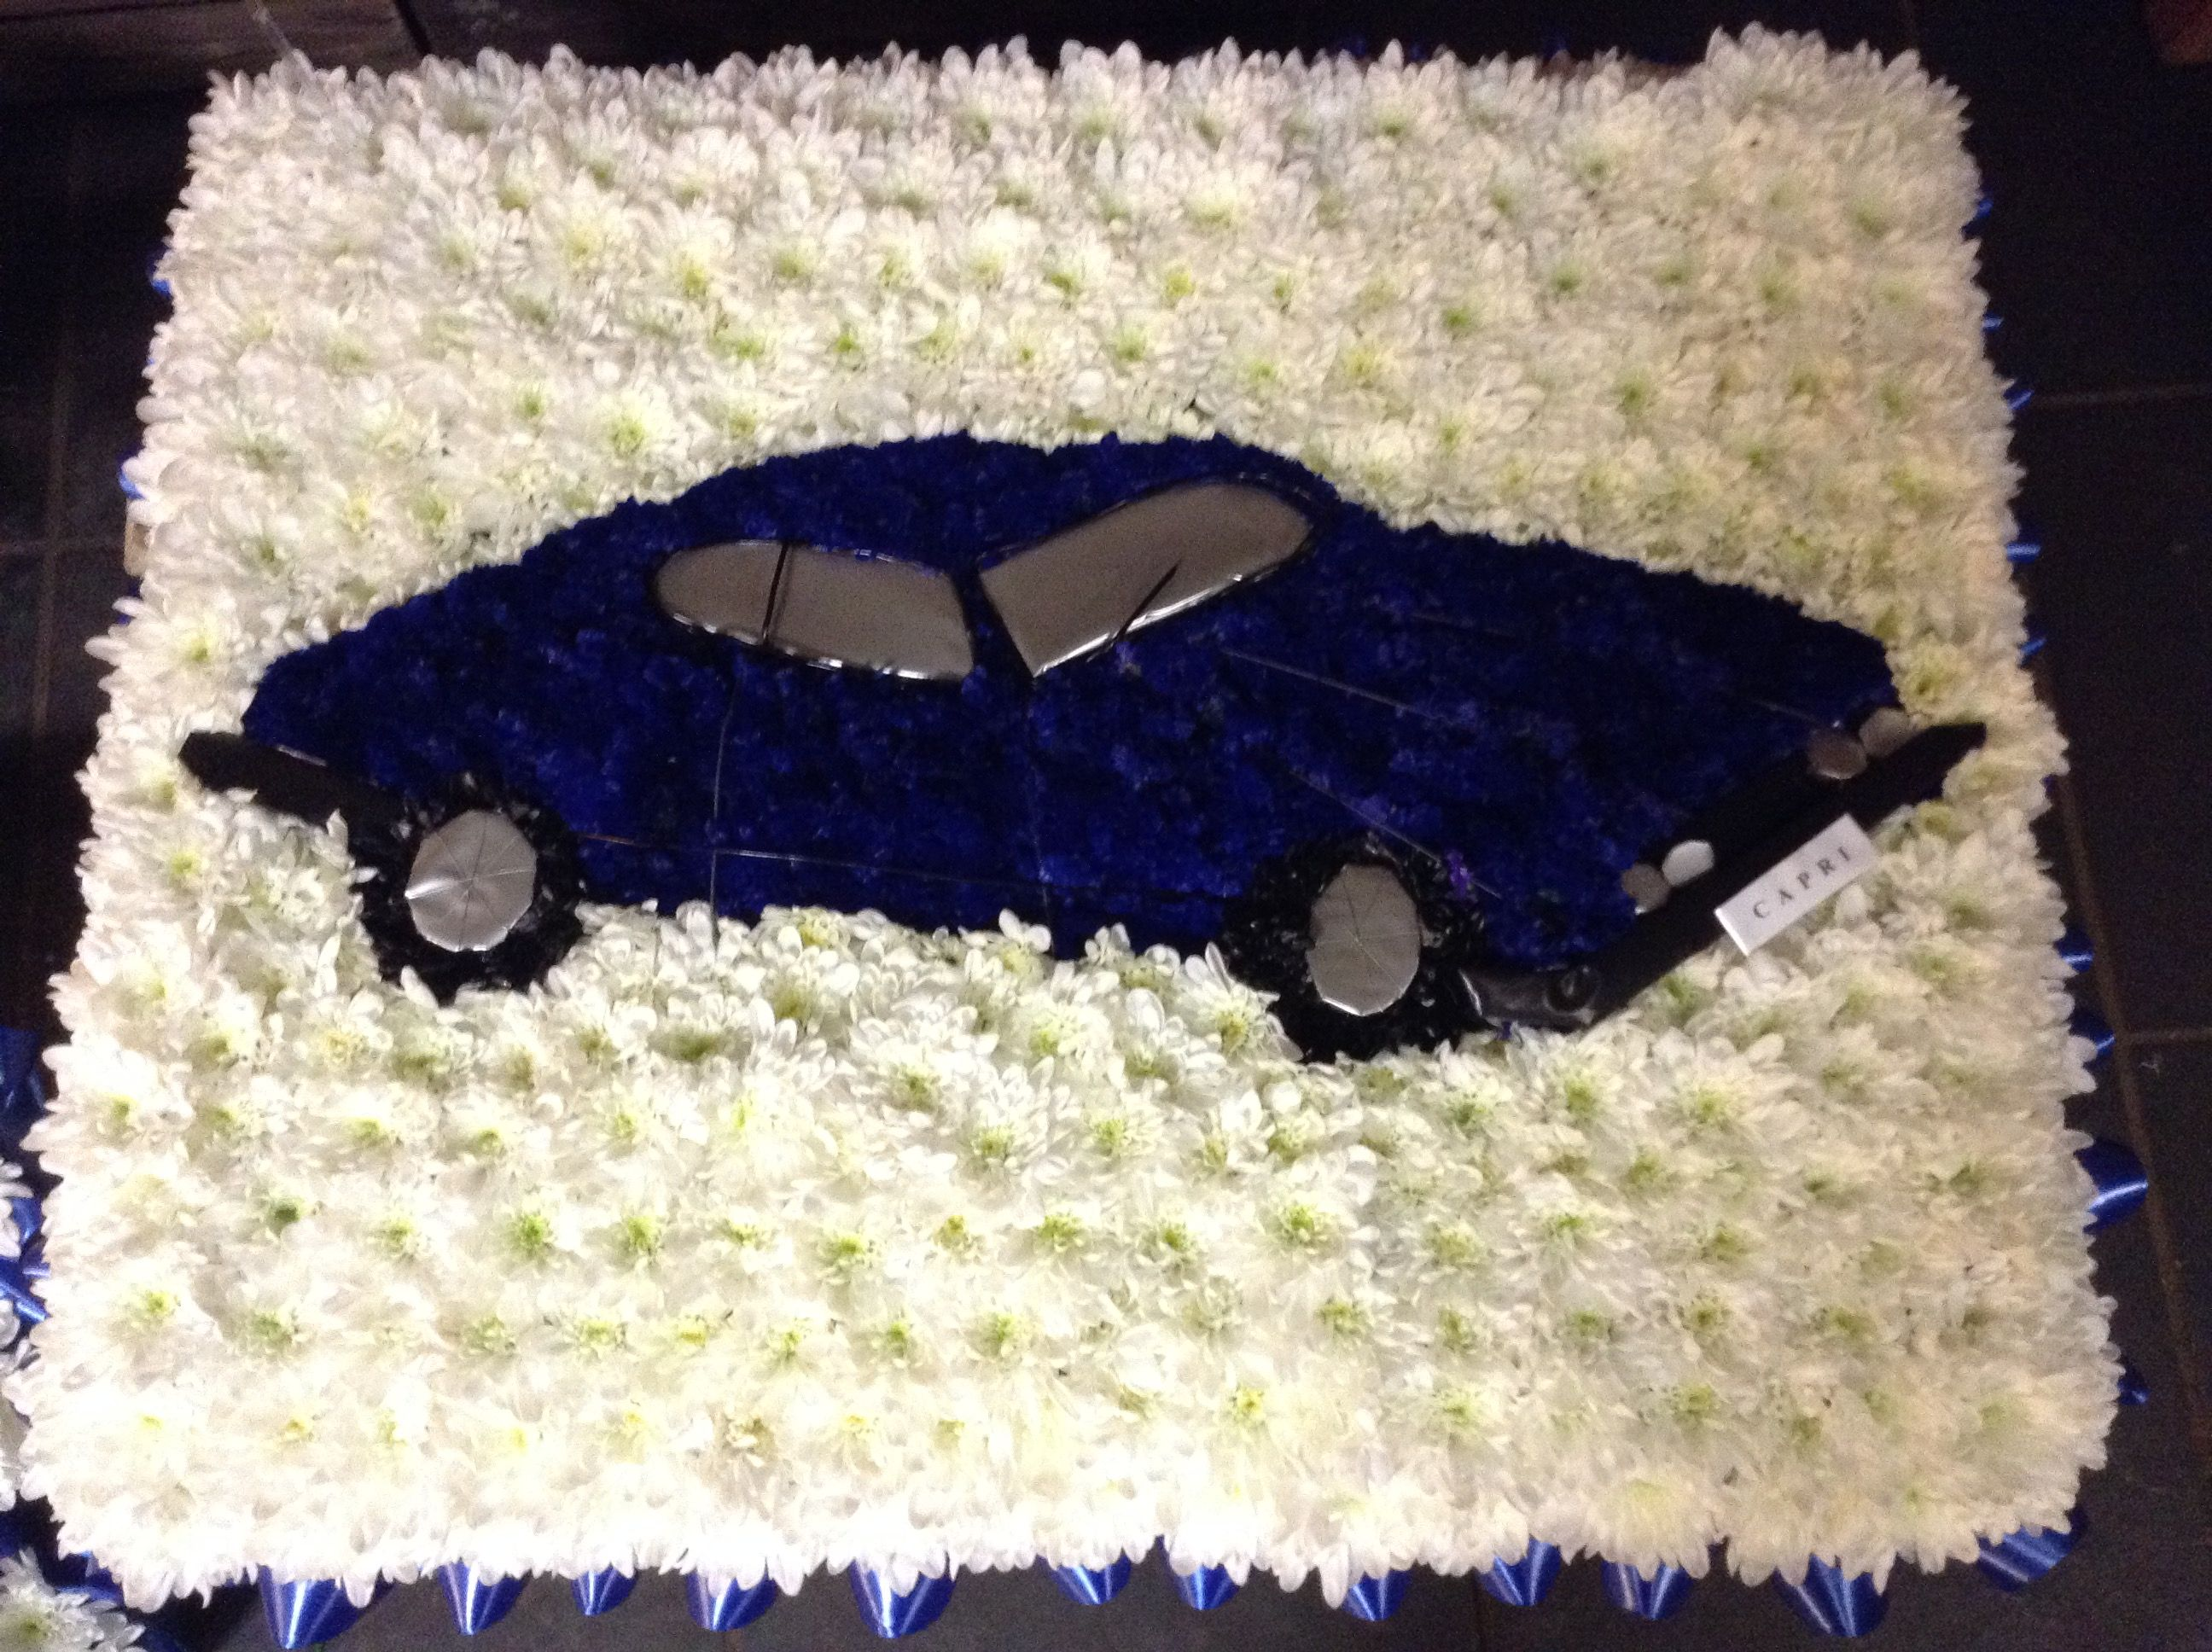 Favourite car funeral flowers car favourite funeral flowers favourite car funeral flowers car favourite izmirmasajfo Image collections